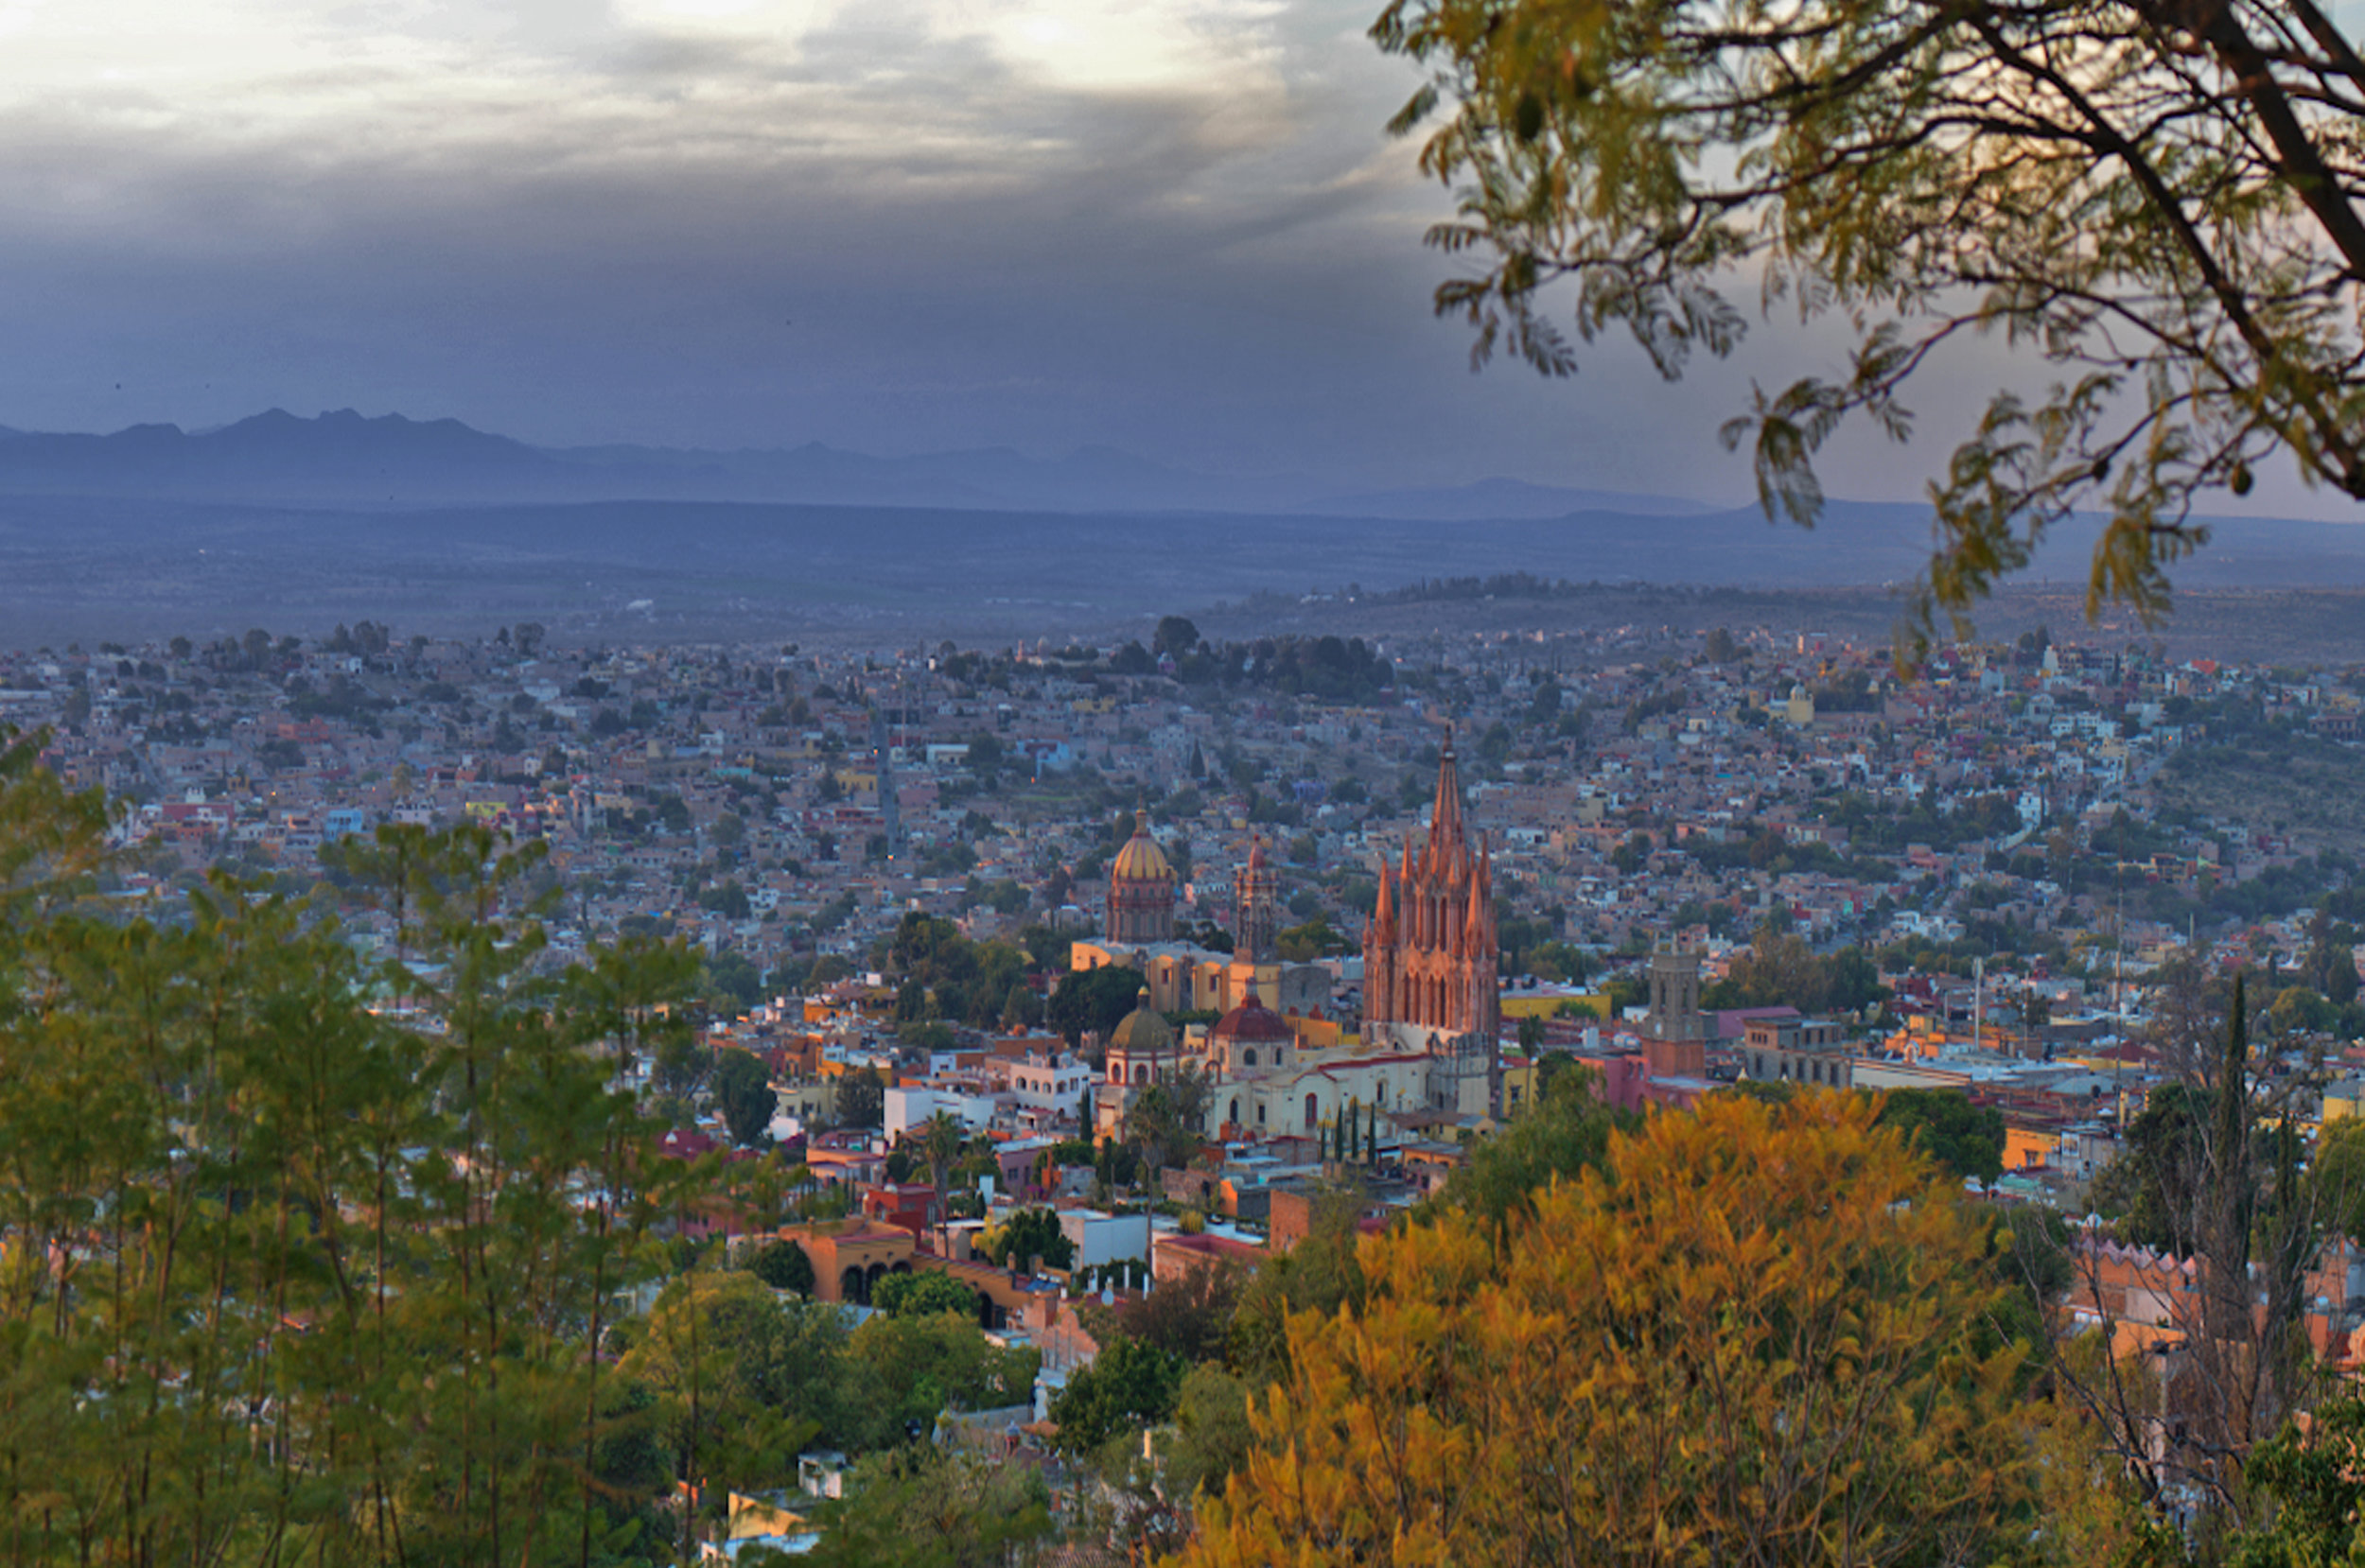 Panoramic View from El Mirador - San Miguel de Allende.jpg